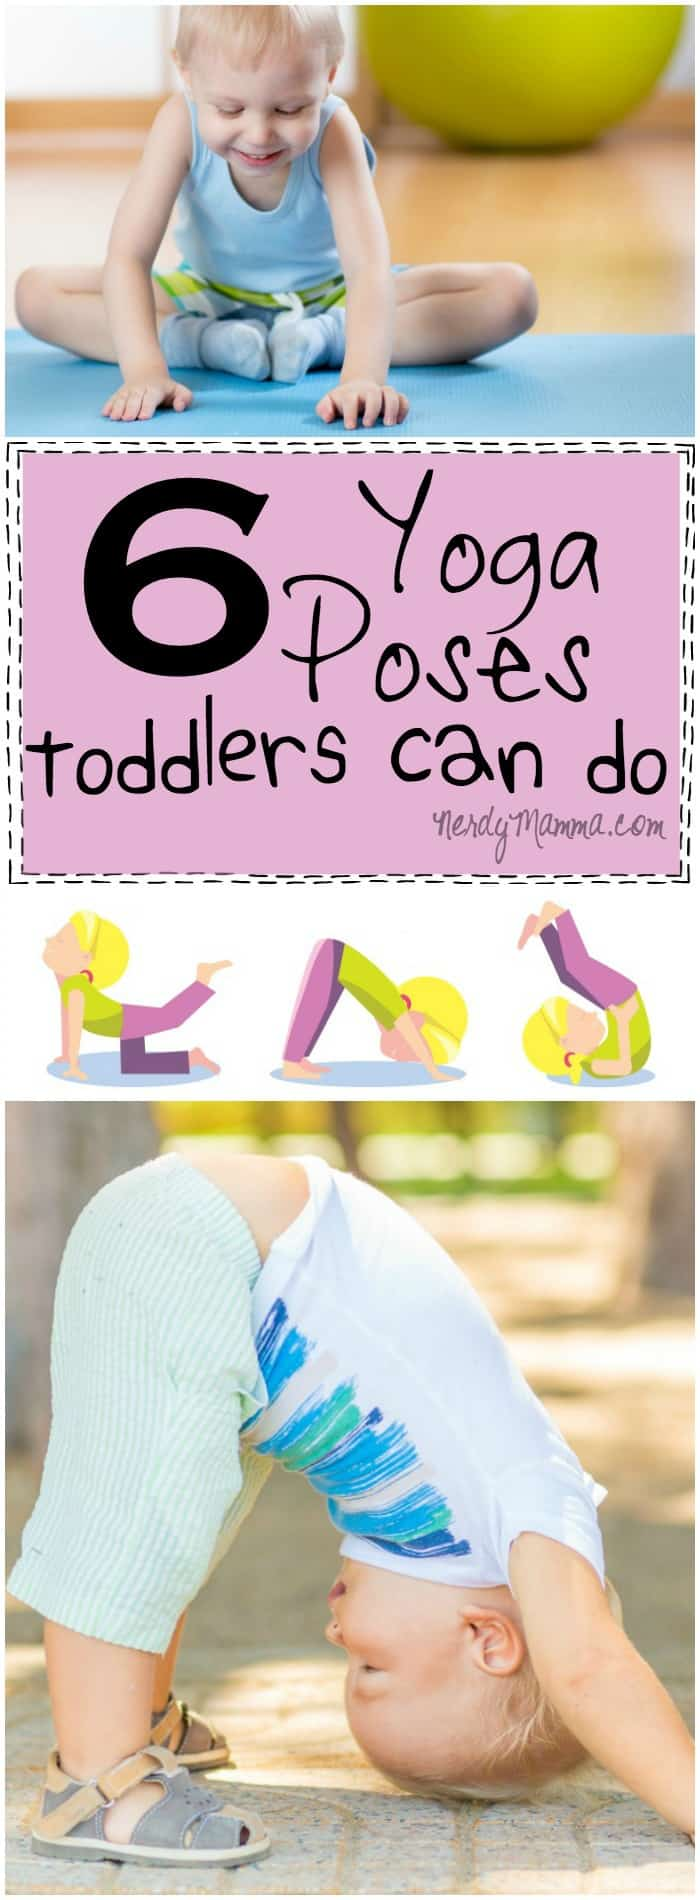 image relating to Printable Yoga Poses for Preschoolers identify 6 Yoga Poses Infants Can Do (with a absolutely free printable) - Nerdy